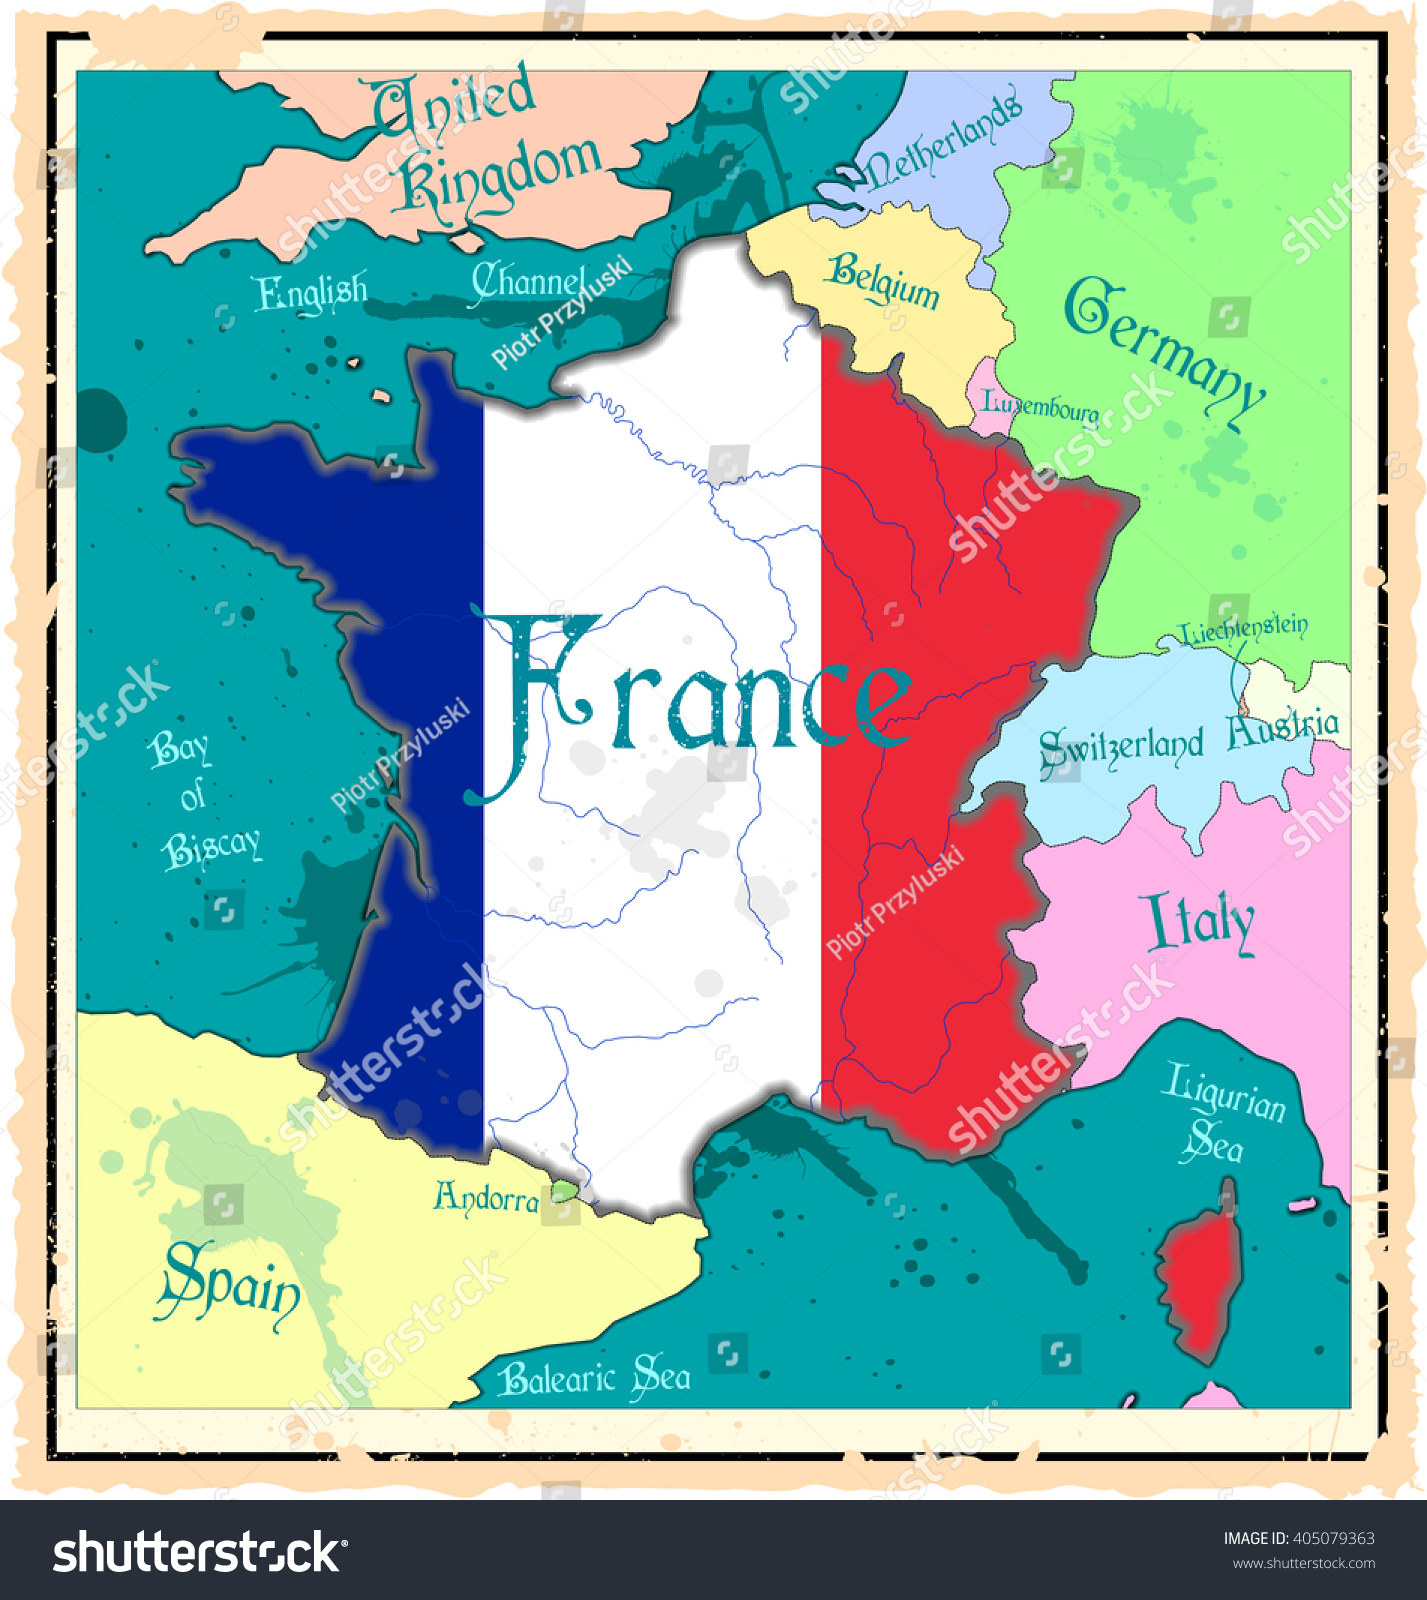 Map Of France In English.France Retro Style Political Map French Stock Vector Royalty Free